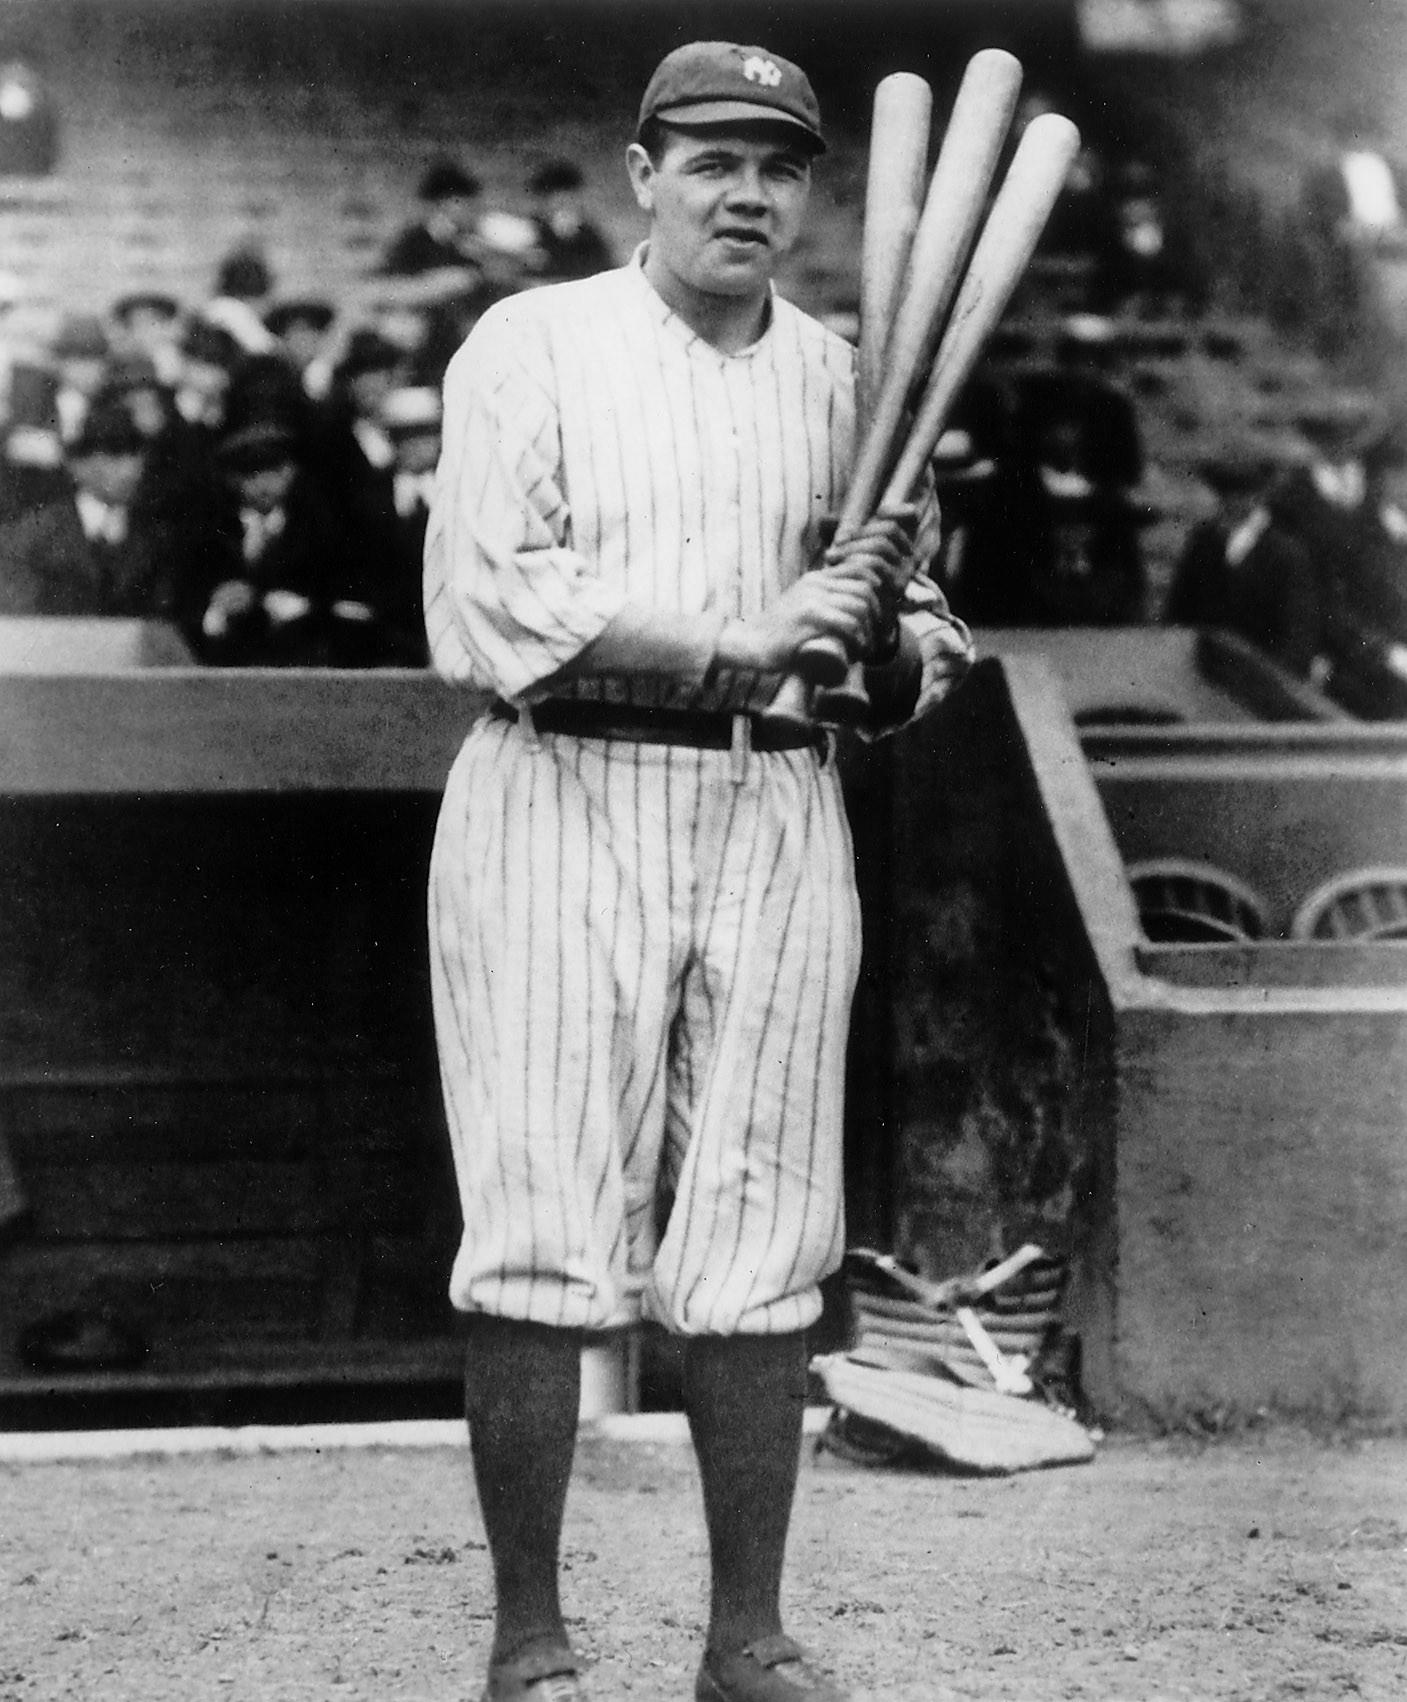 An undated photo of Babe Ruth.